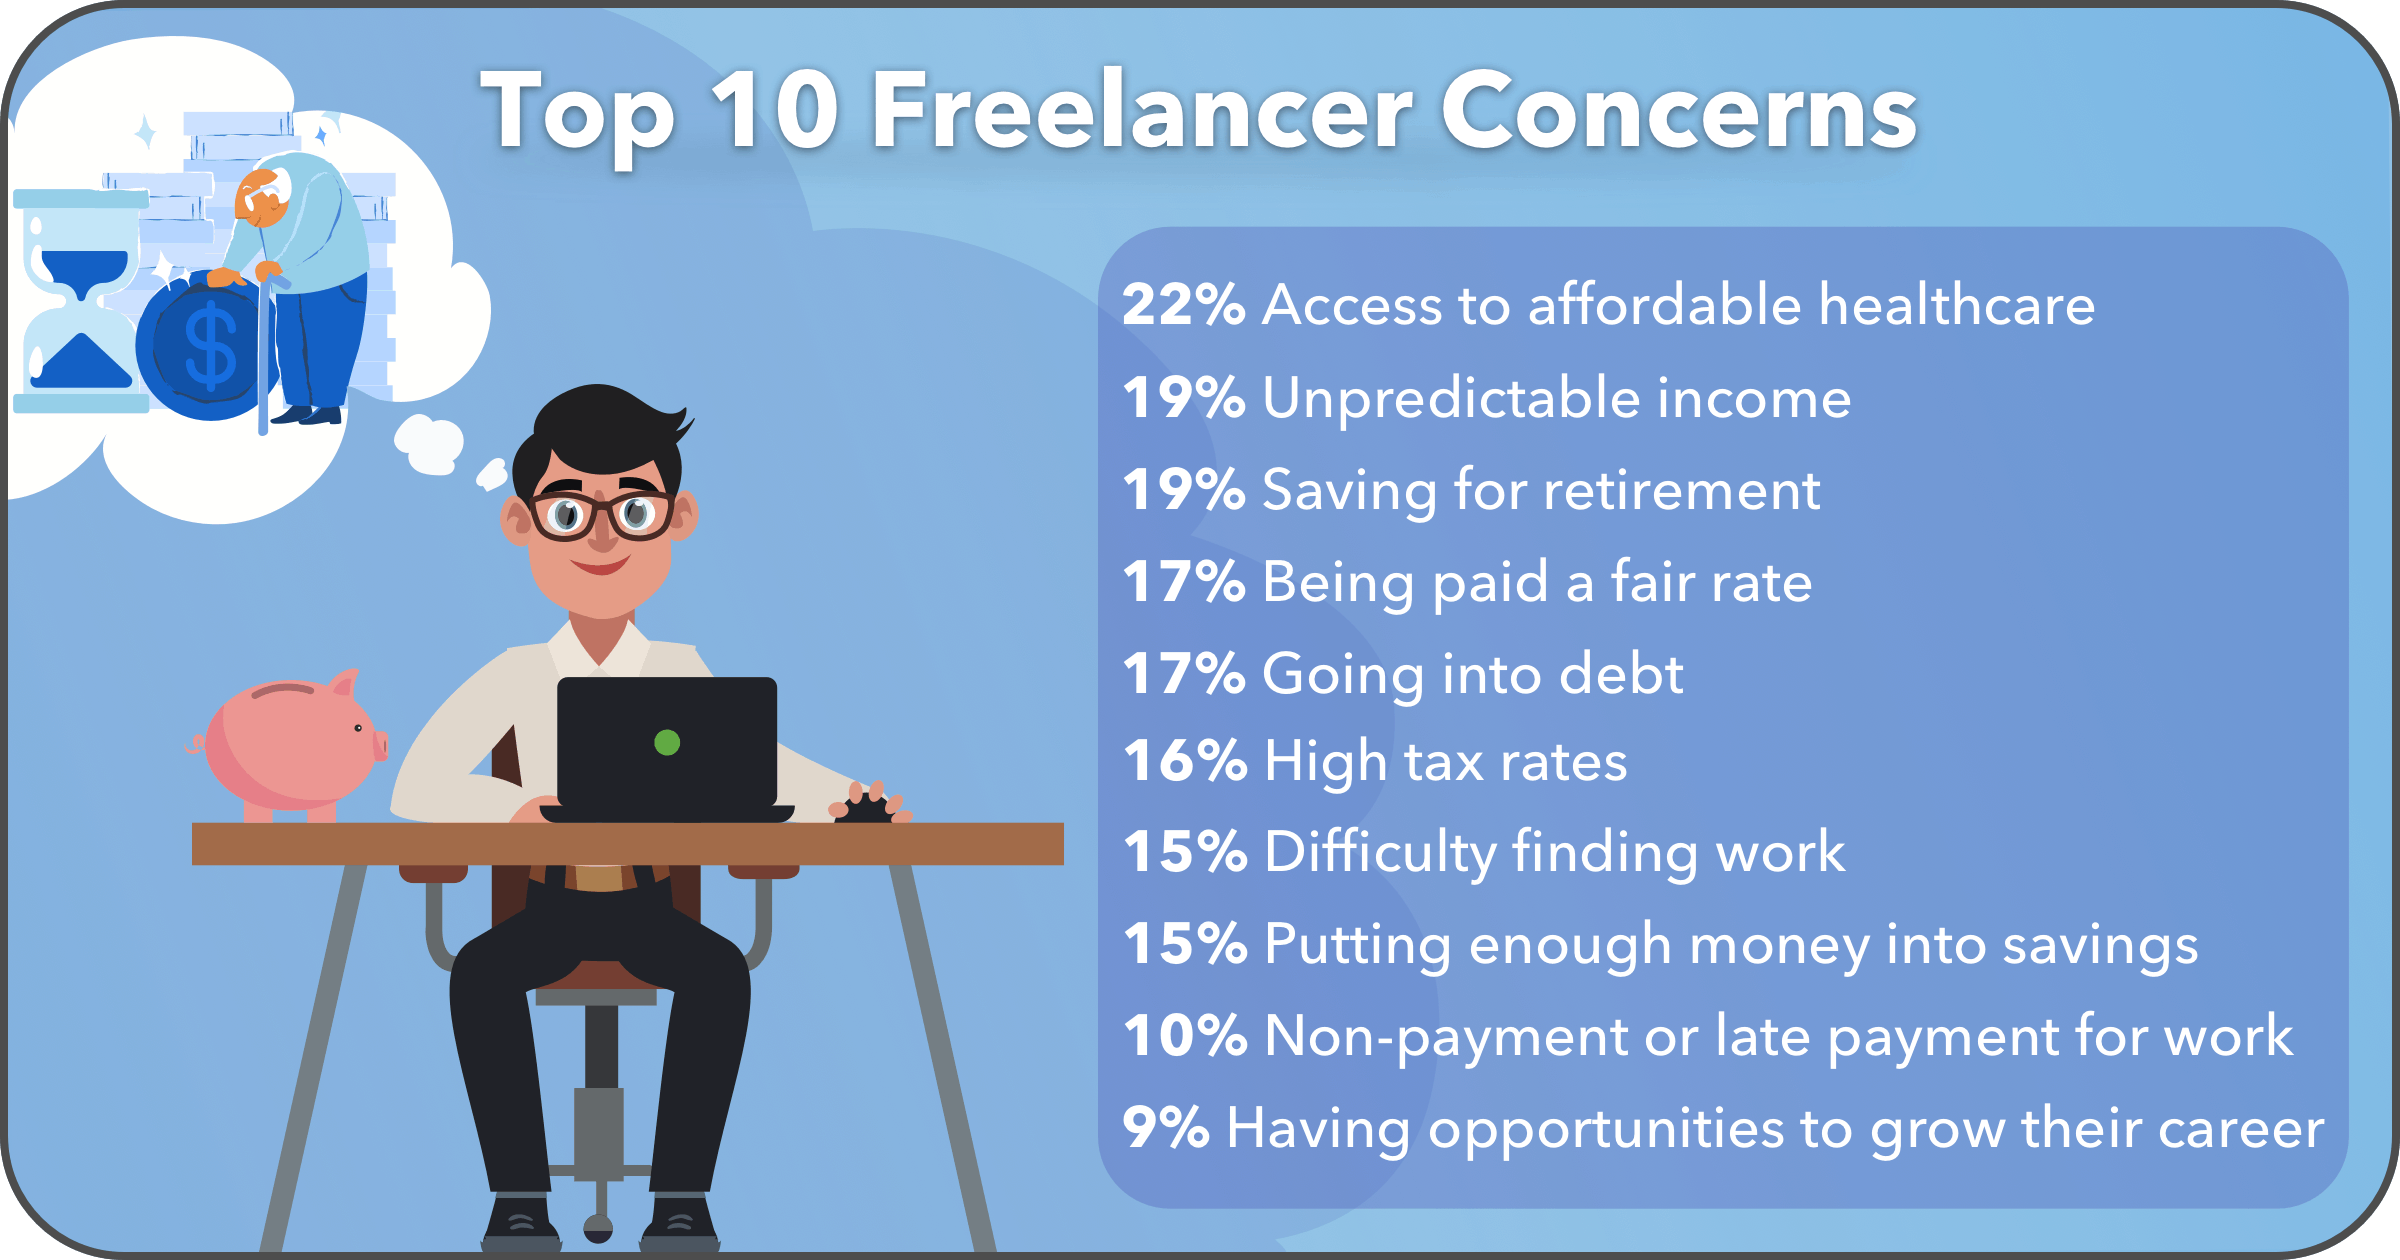 Top Things Freelancers Worry About